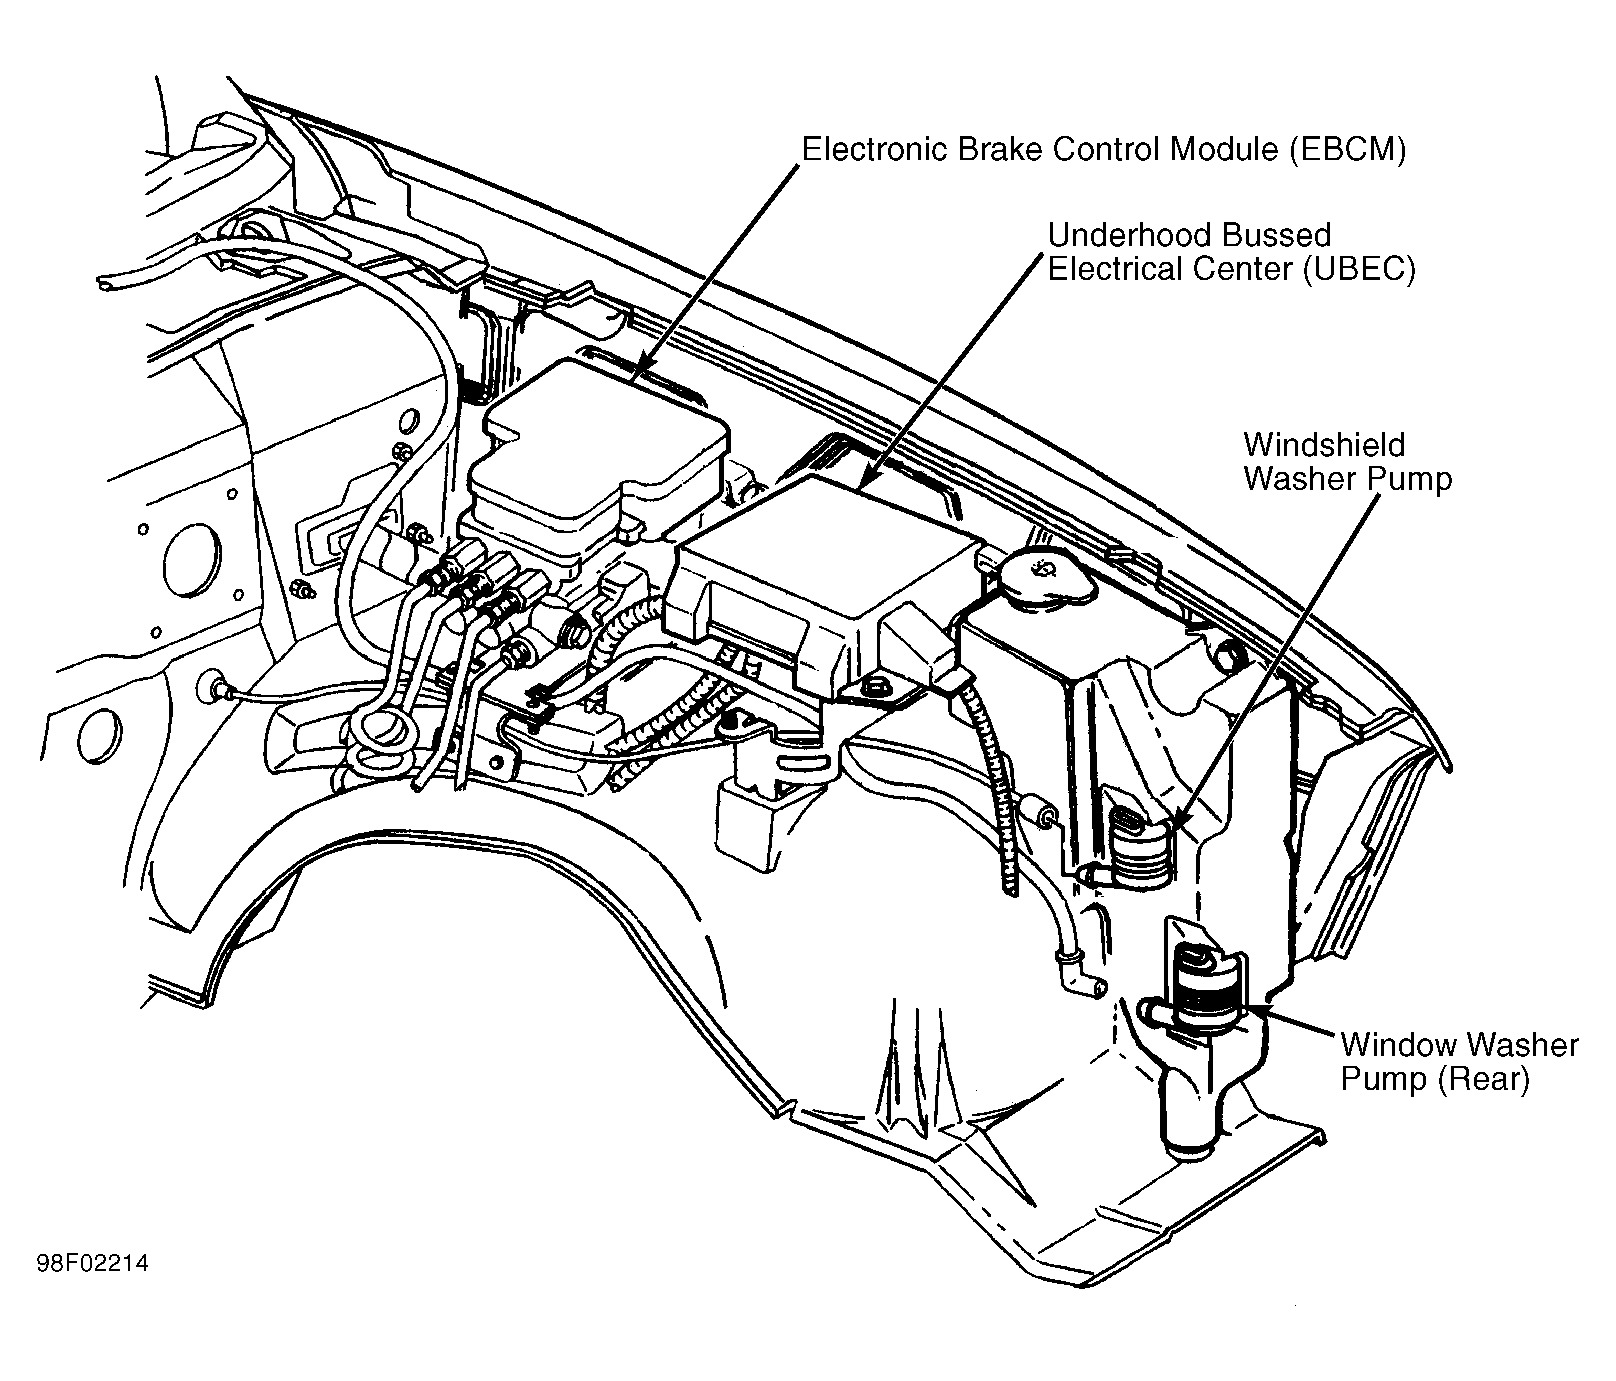 2002 Gmc Sierra Fuse Box Diagram Wiring Library Savana 1995 Sonoma Automotive U2022 Rh Nfluencer Co 2003